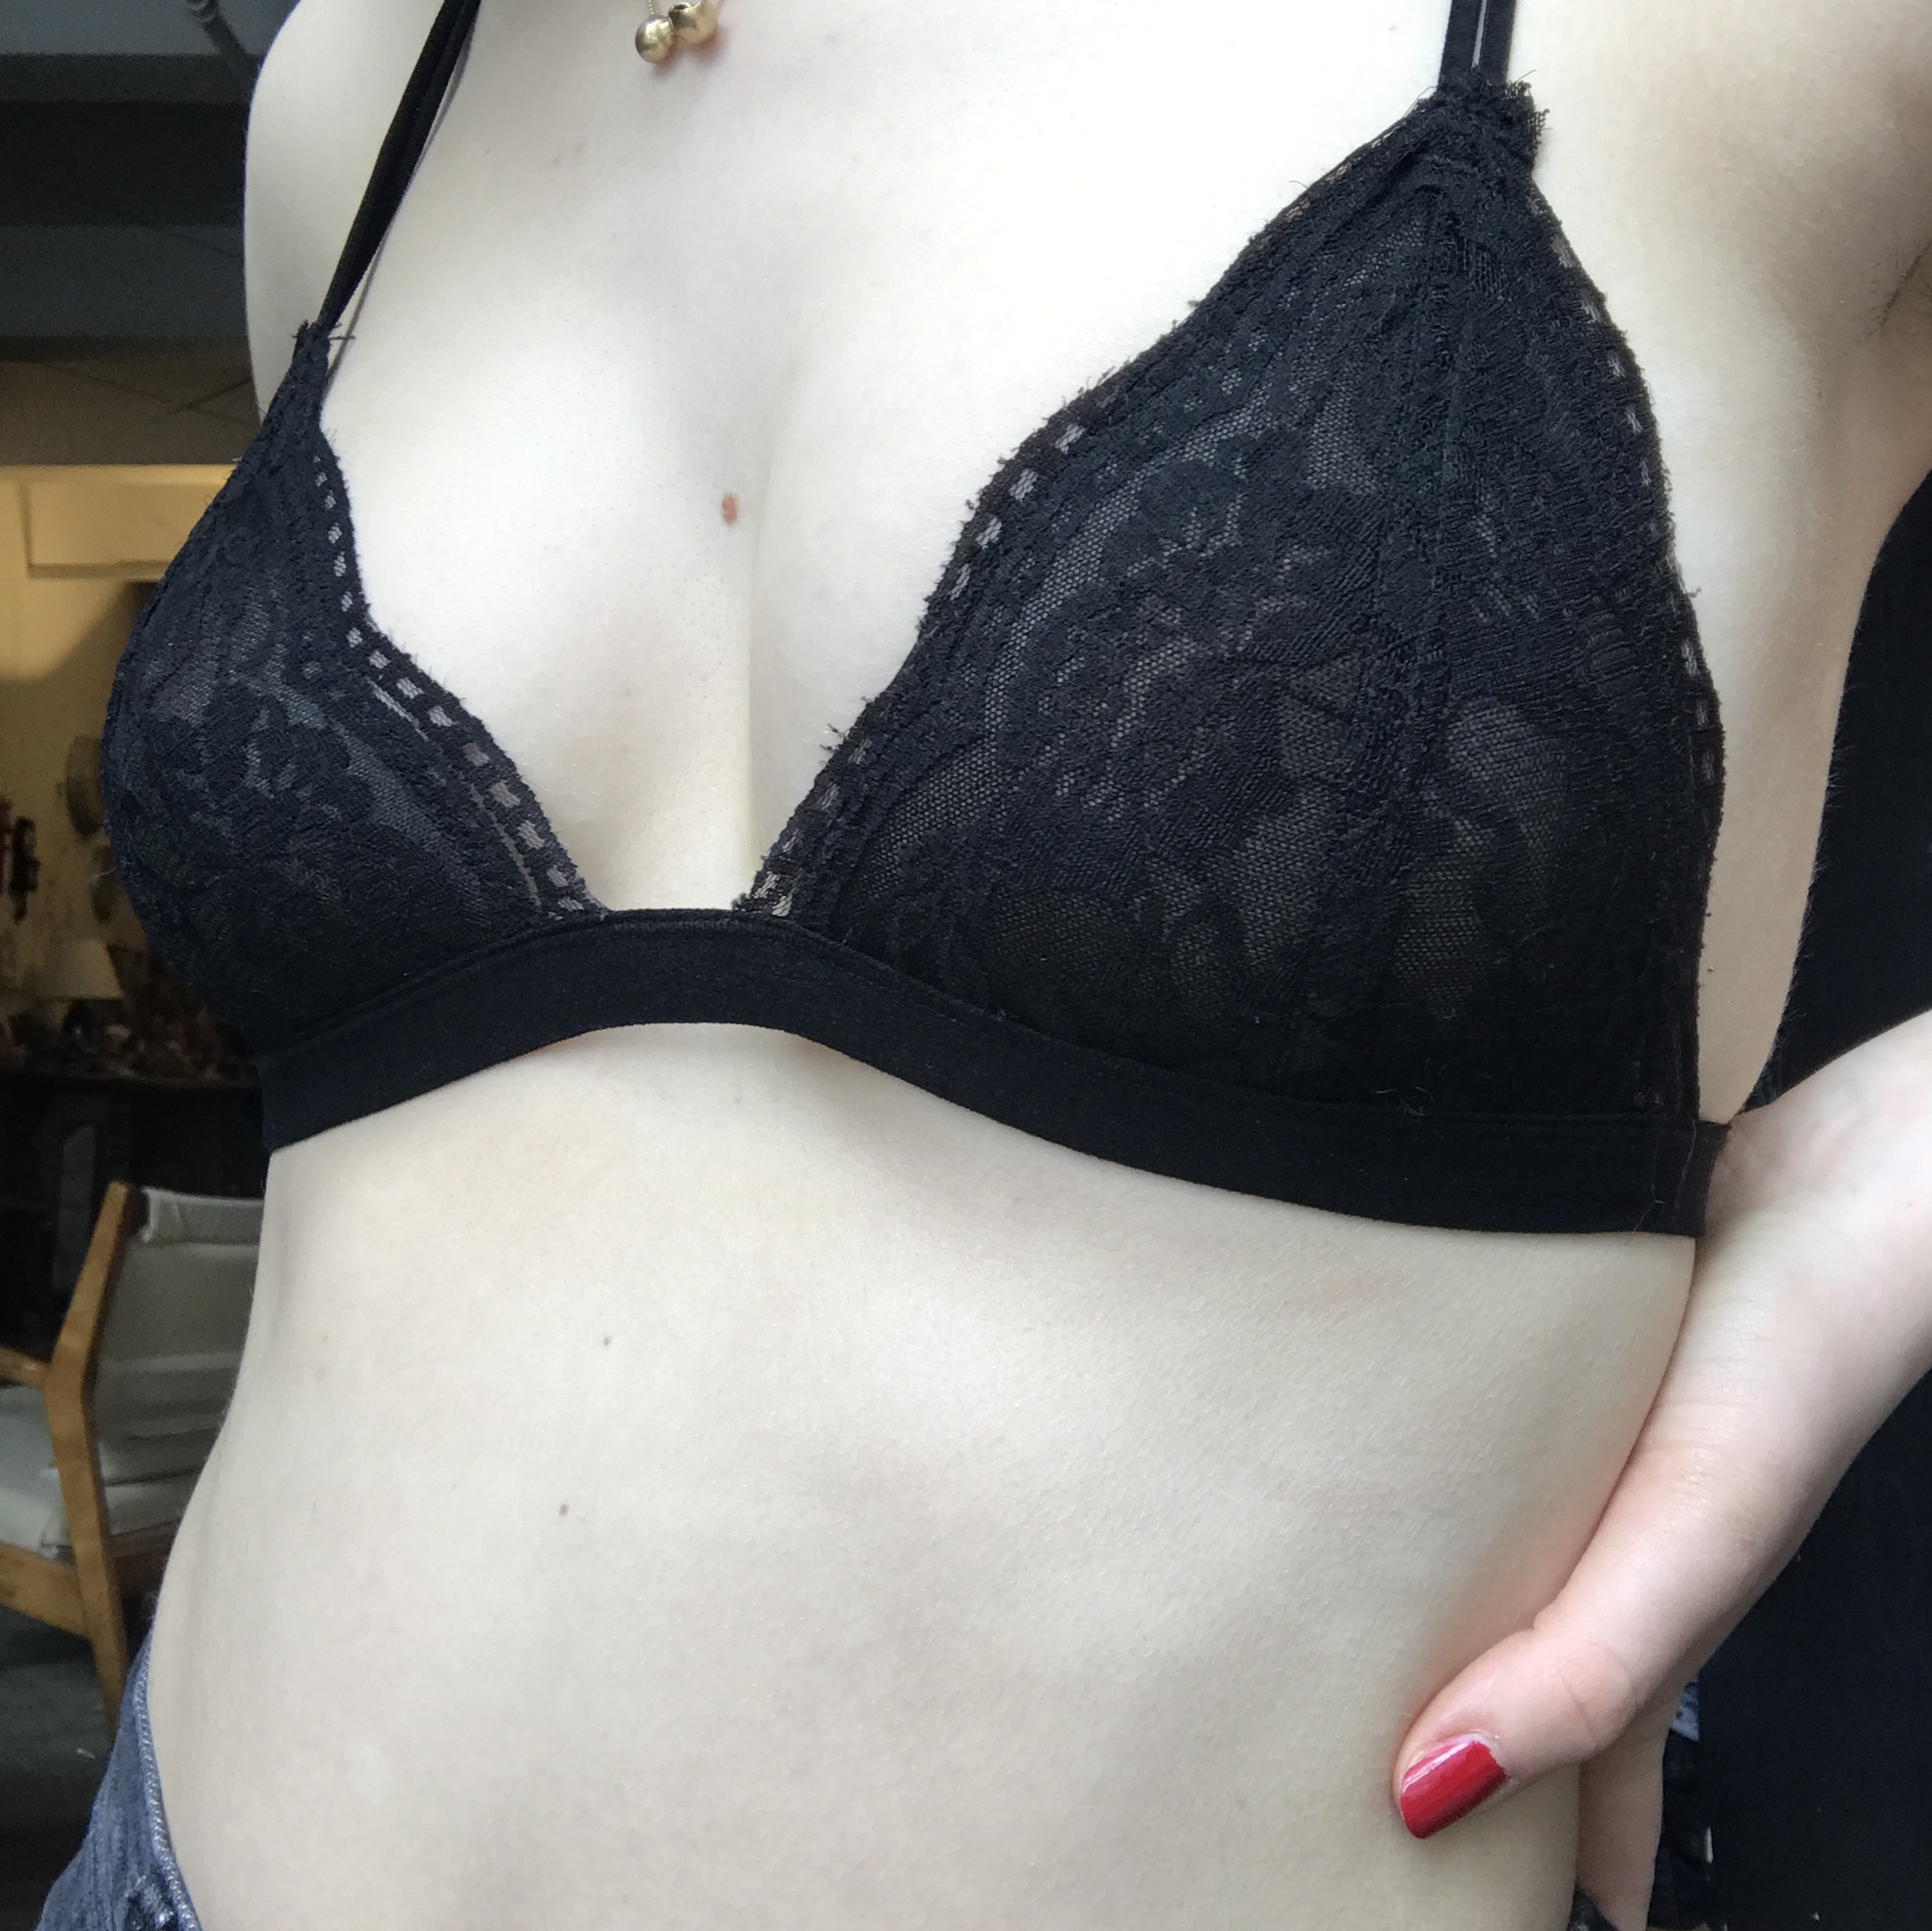 d55eca885ba48 Anemone black lace bralette. Marked s m. I would say fits an - Depop